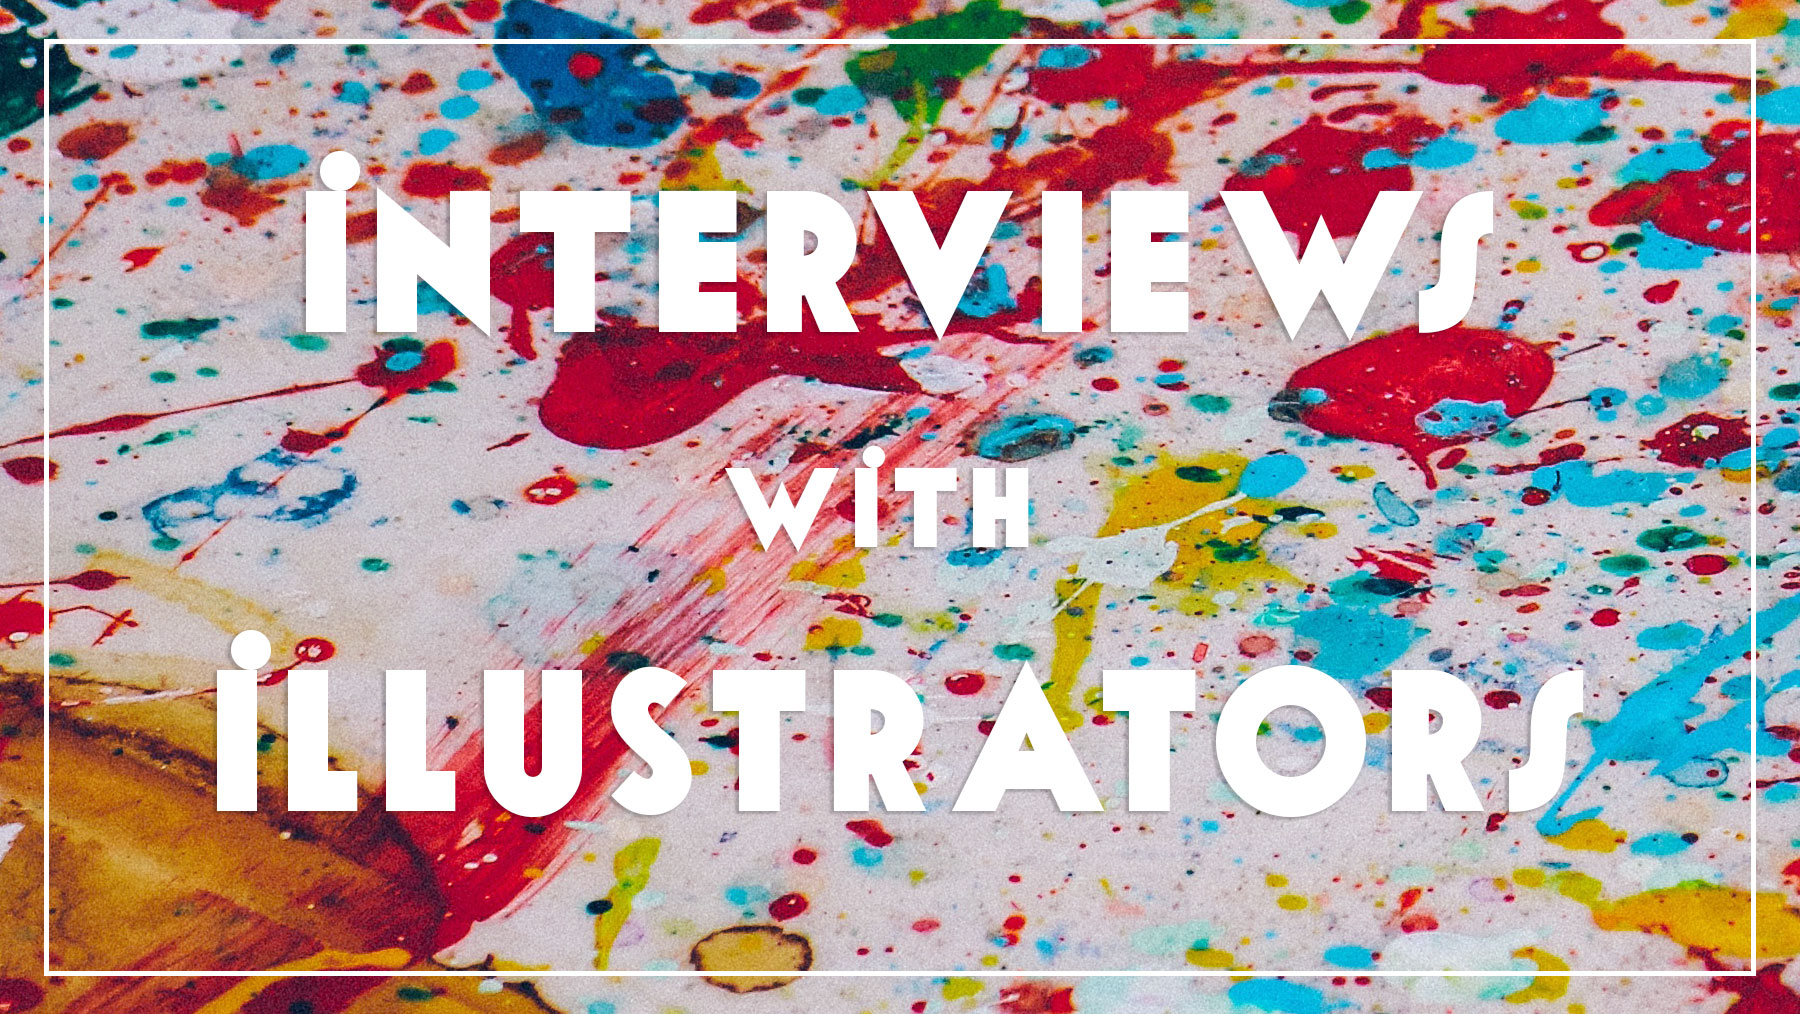 Interviews with Illustrators: Introducing Domestic Cowboy